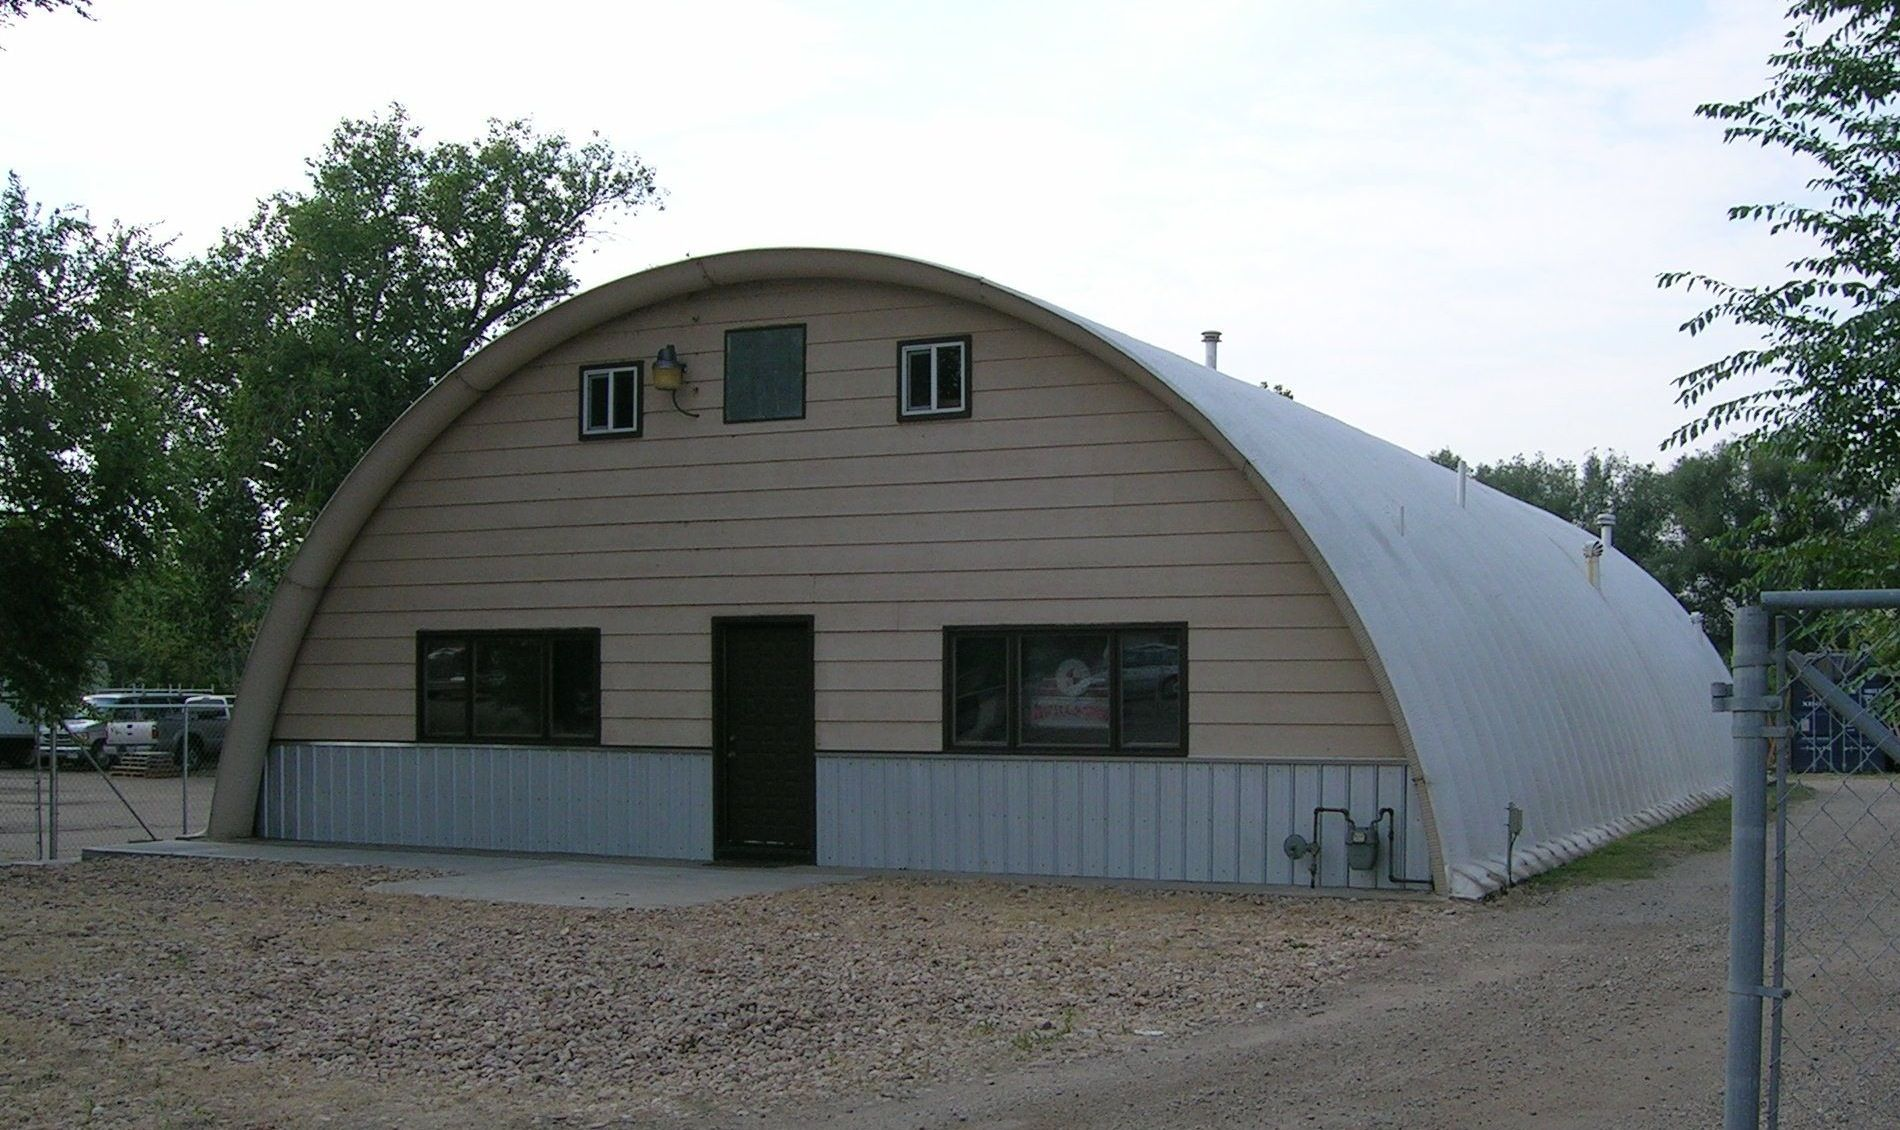 11 Things To Know Before Building A Quonset Hut Homes House Plans